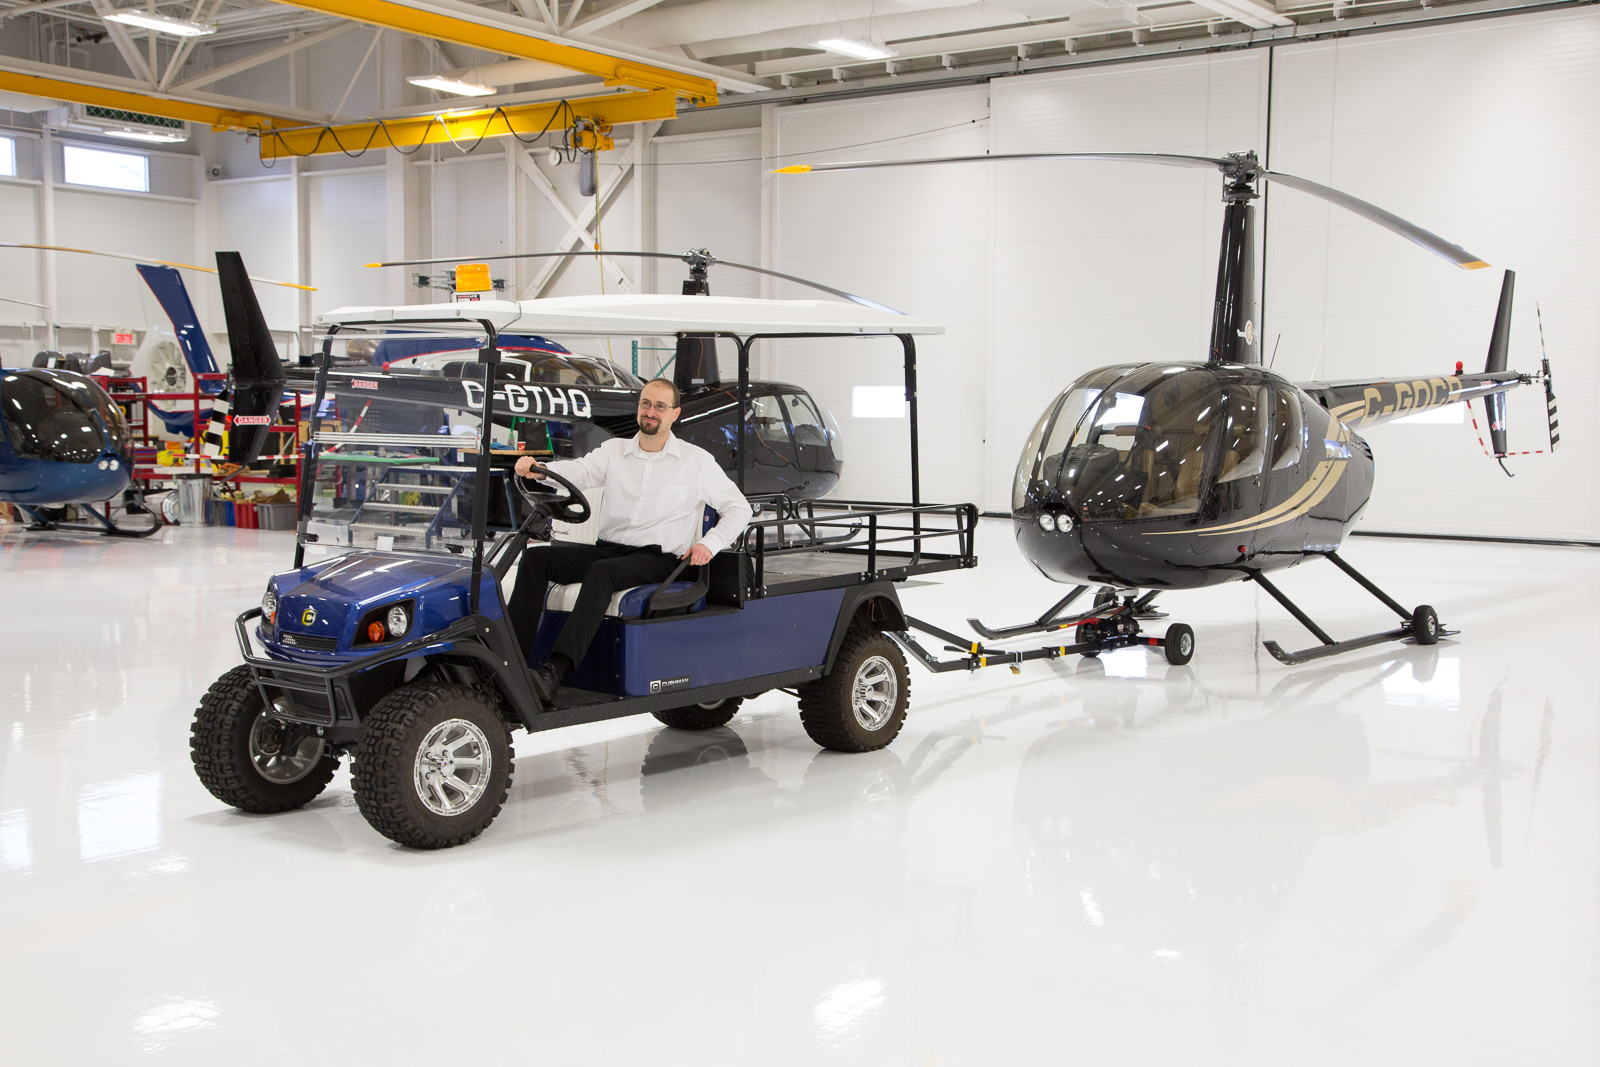 Helicopter Universal Towbar Accessories Helitowcart Com Helicopter Moving Solutions Accessories